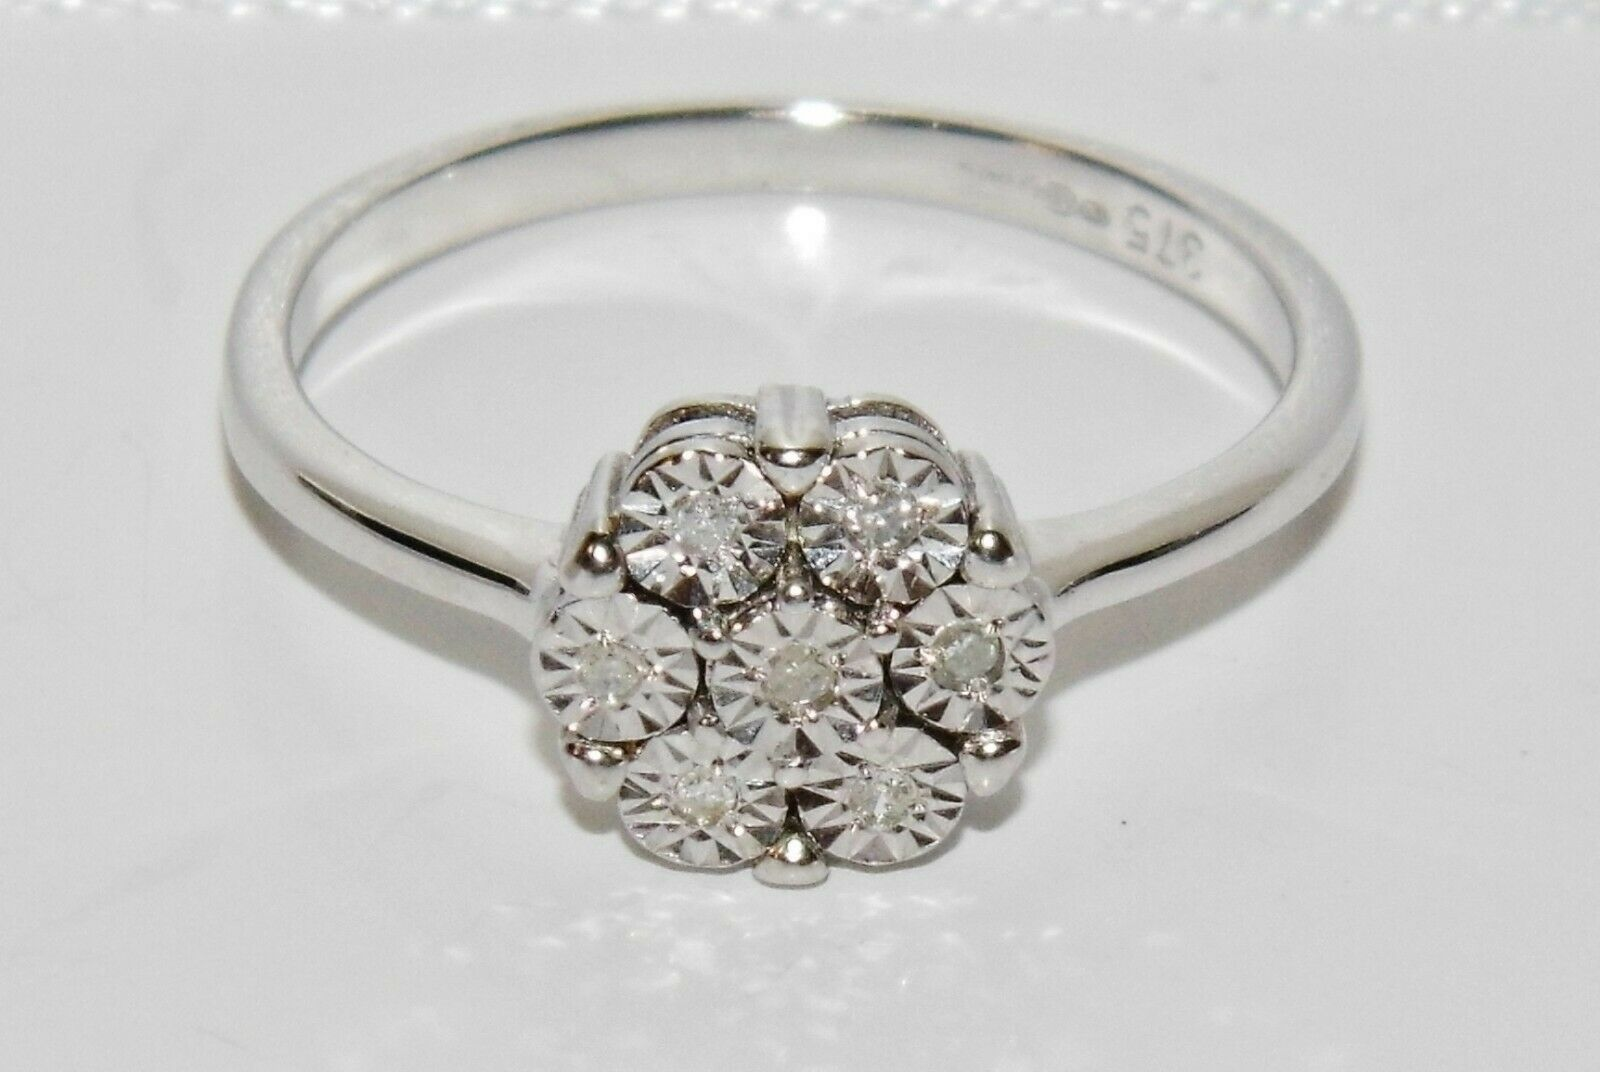 9ct White gold 0.10ct Diamond Daisy Cluster Ring size M - Solid 9K gold